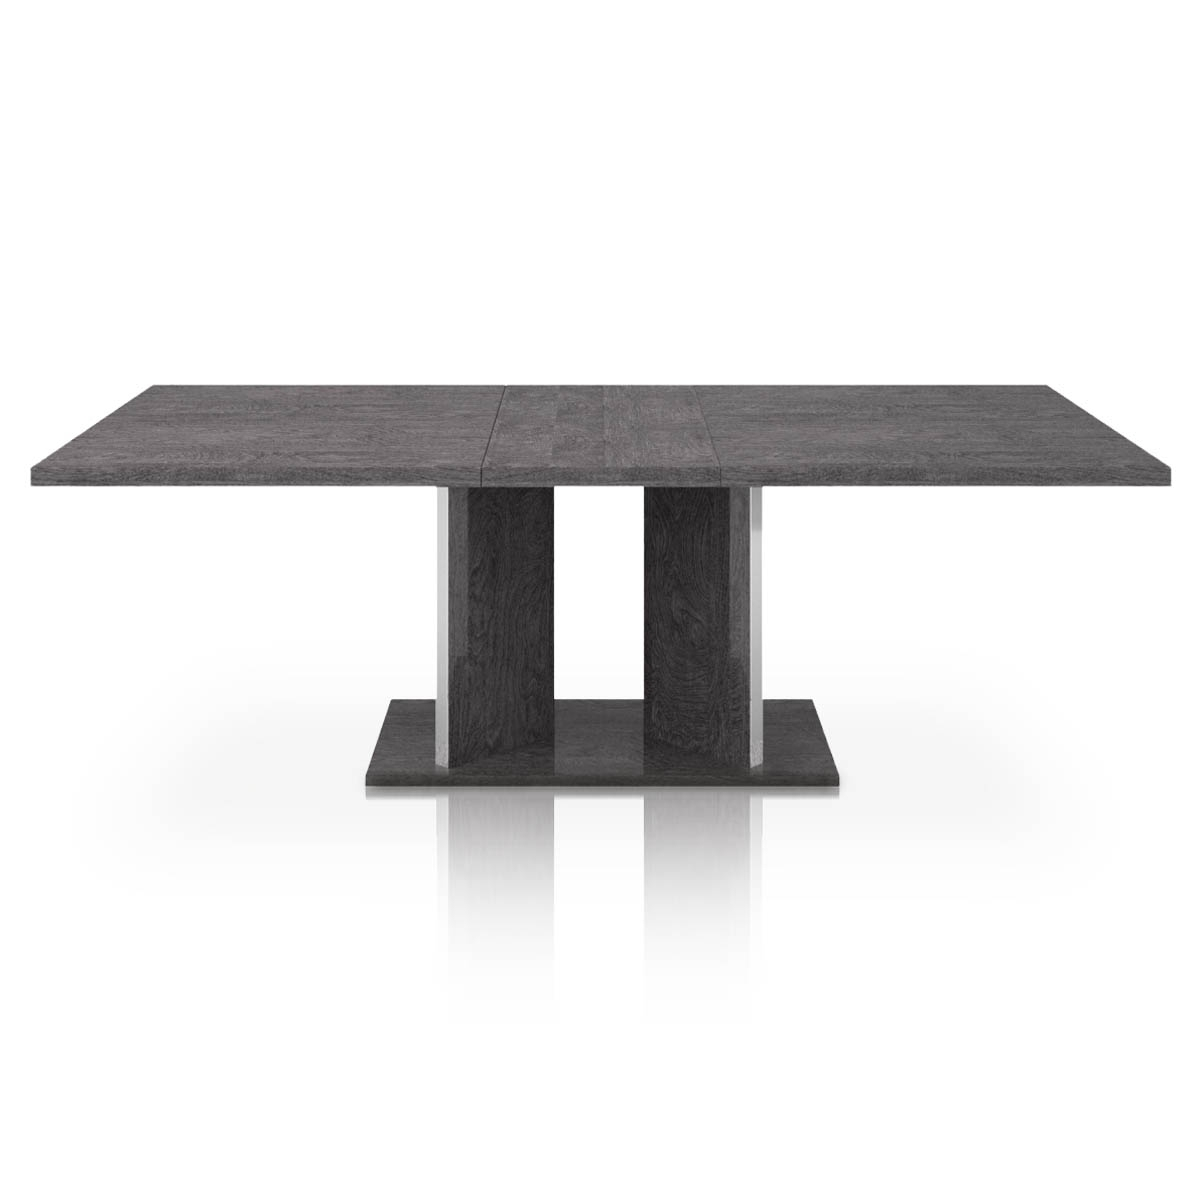 [%100+ [ Extension Dining Room Tables ] | Designs Vineyard Extension Intended For Recent Chapleau Ii 7 Piece Extension Dining Table Sets|Chapleau Ii 7 Piece Extension Dining Table Sets Within Most Current 100+ [ Extension Dining Room Tables ] | Designs Vineyard Extension|2017 Chapleau Ii 7 Piece Extension Dining Table Sets Inside 100+ [ Extension Dining Room Tables ] | Designs Vineyard Extension|Popular 100+ [ Extension Dining Room Tables ] | Designs Vineyard Extension Within Chapleau Ii 7 Piece Extension Dining Table Sets%] (View 22 of 25)